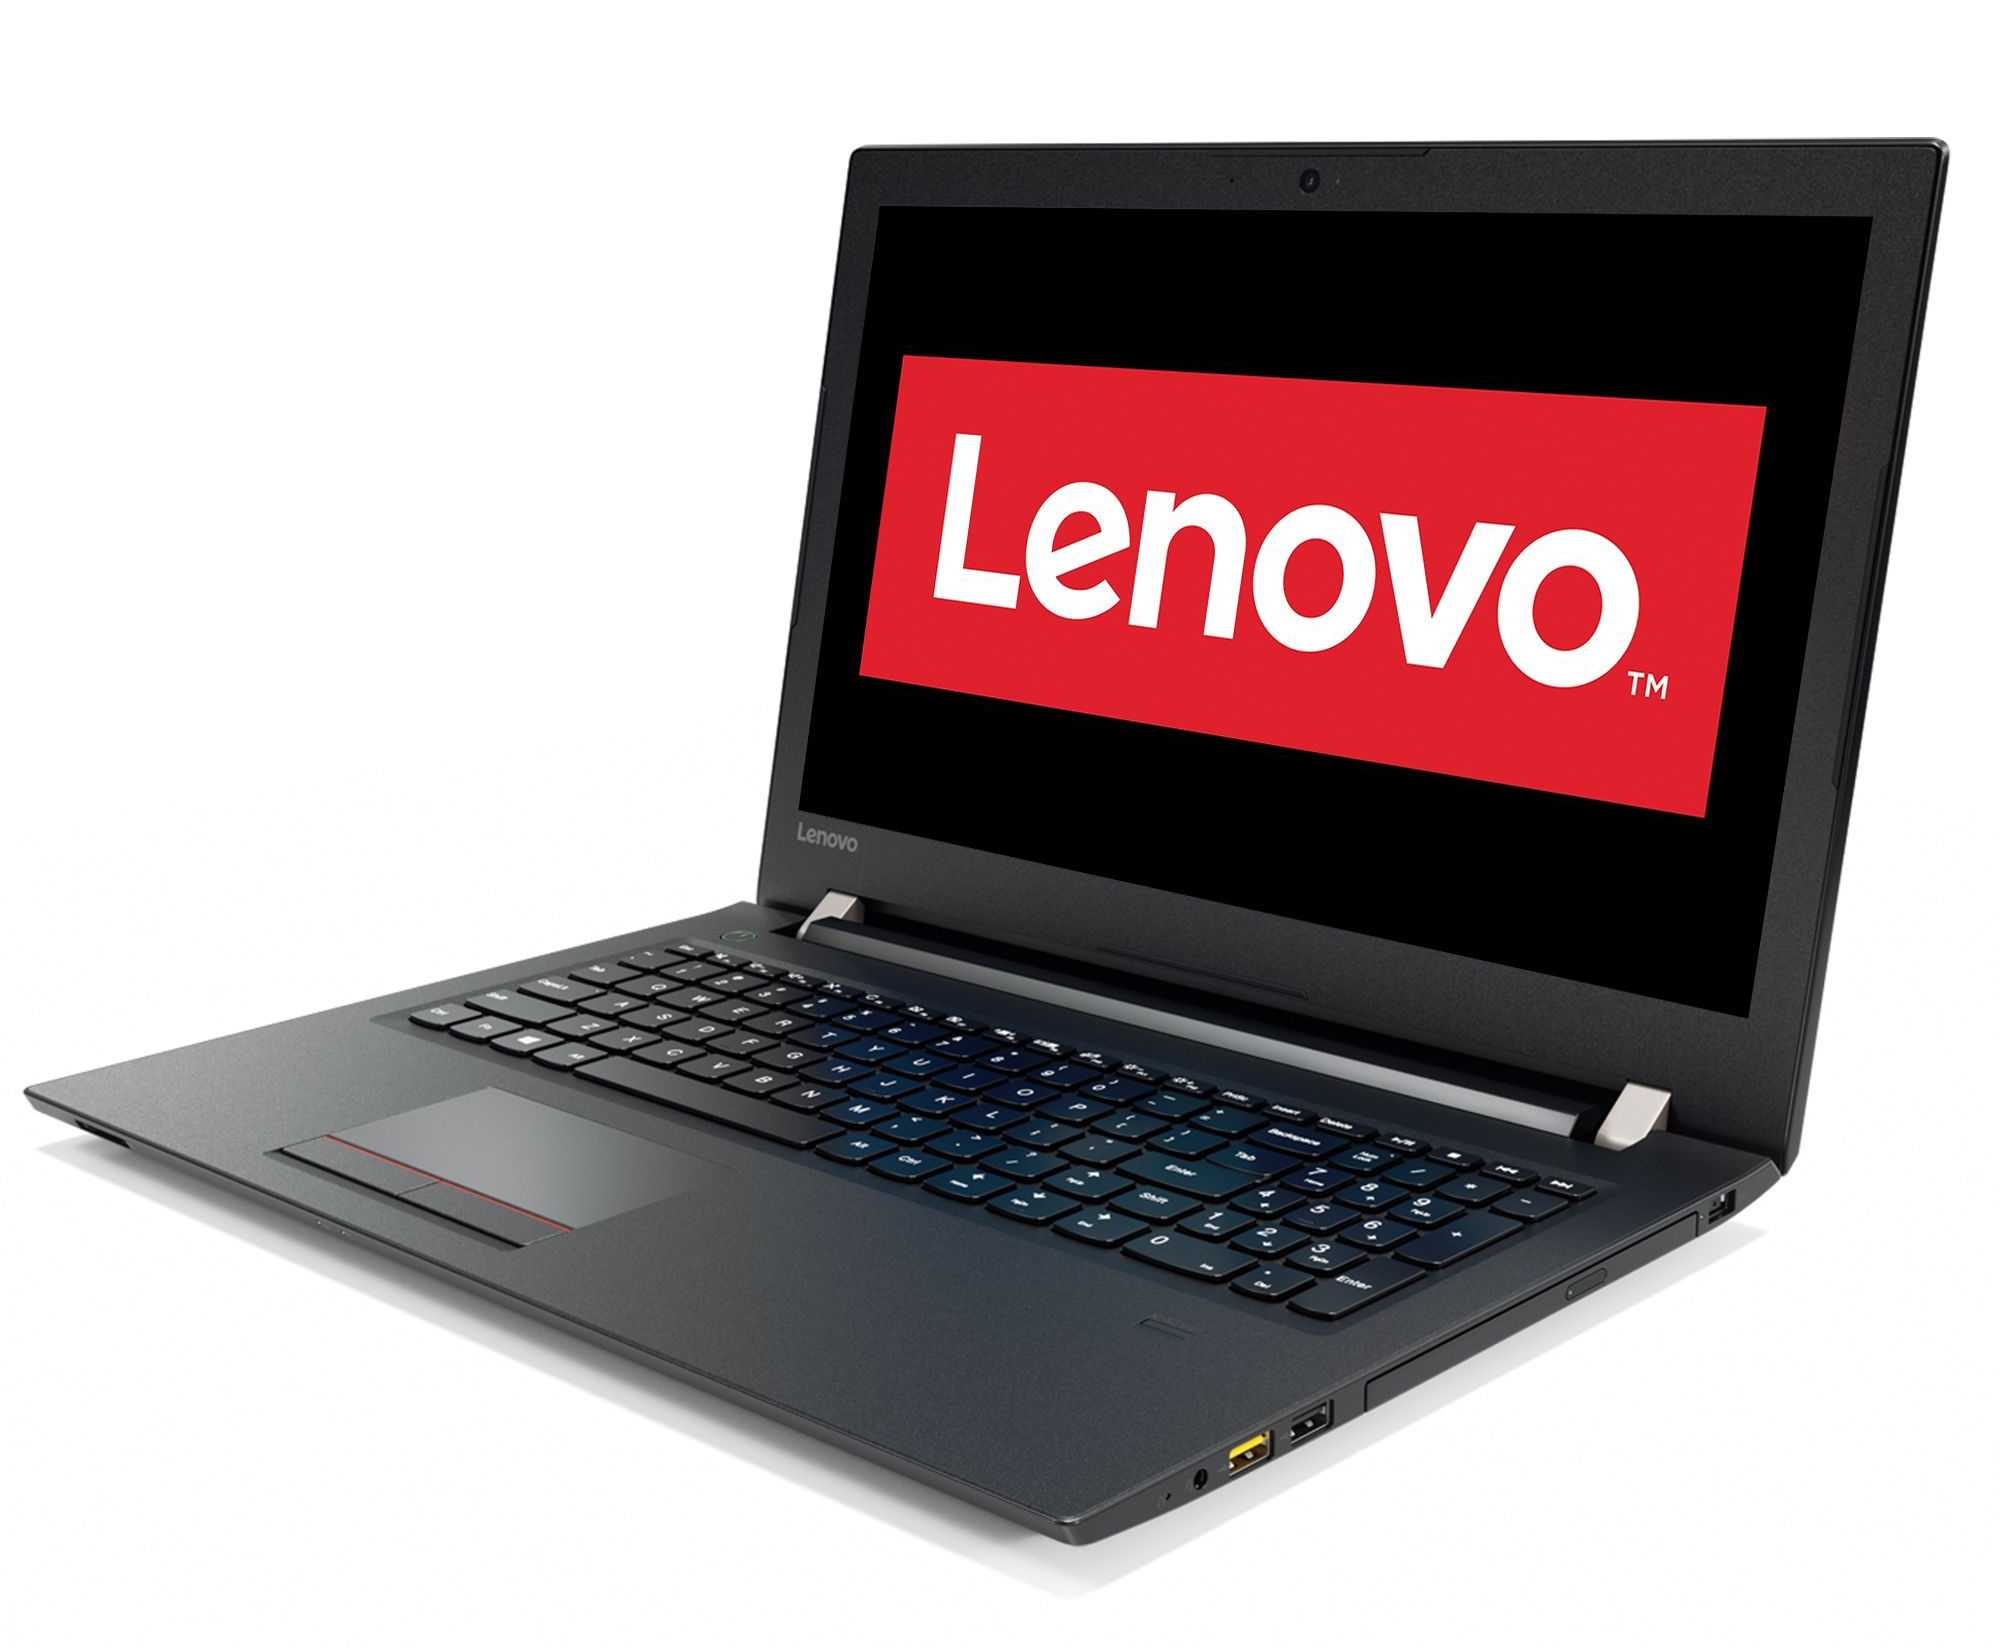 Laptop Lenovo V310-15ISK 15.6 FHD Intel Core I3-6006U 2.0GHz video dedicat AMD Radeon R17M-M1-70 2GB DDR3L 4 GB RAM DDR4 2133MHz HDD 1 TB 5400rpm DVD+-RW DL